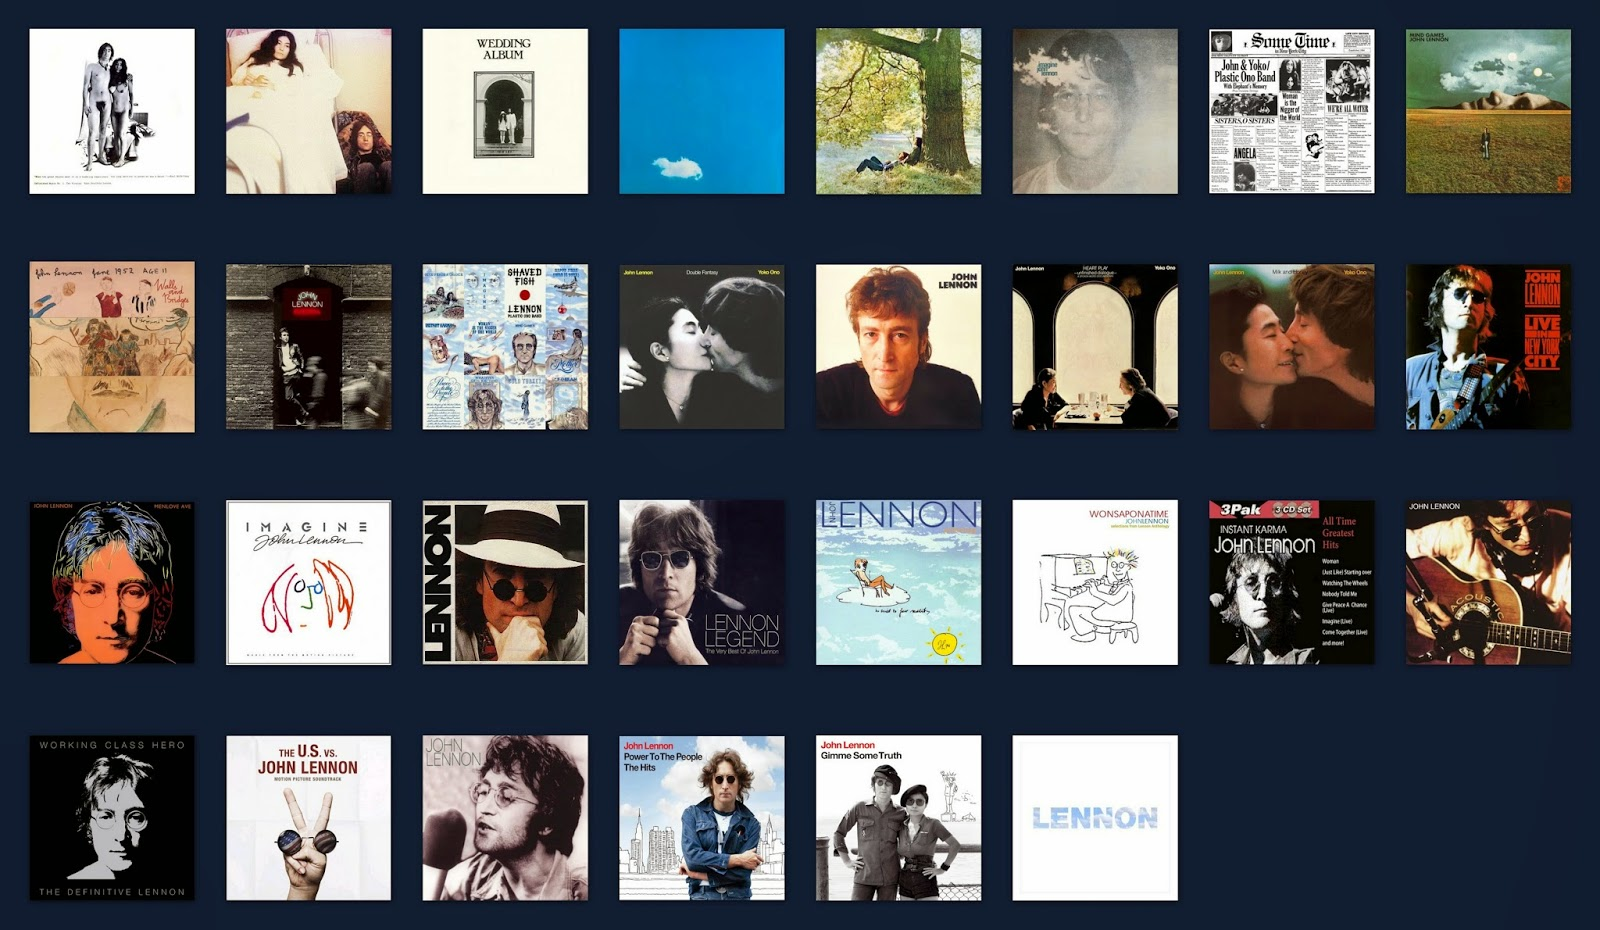 John Lennon UK Album Chart Positions